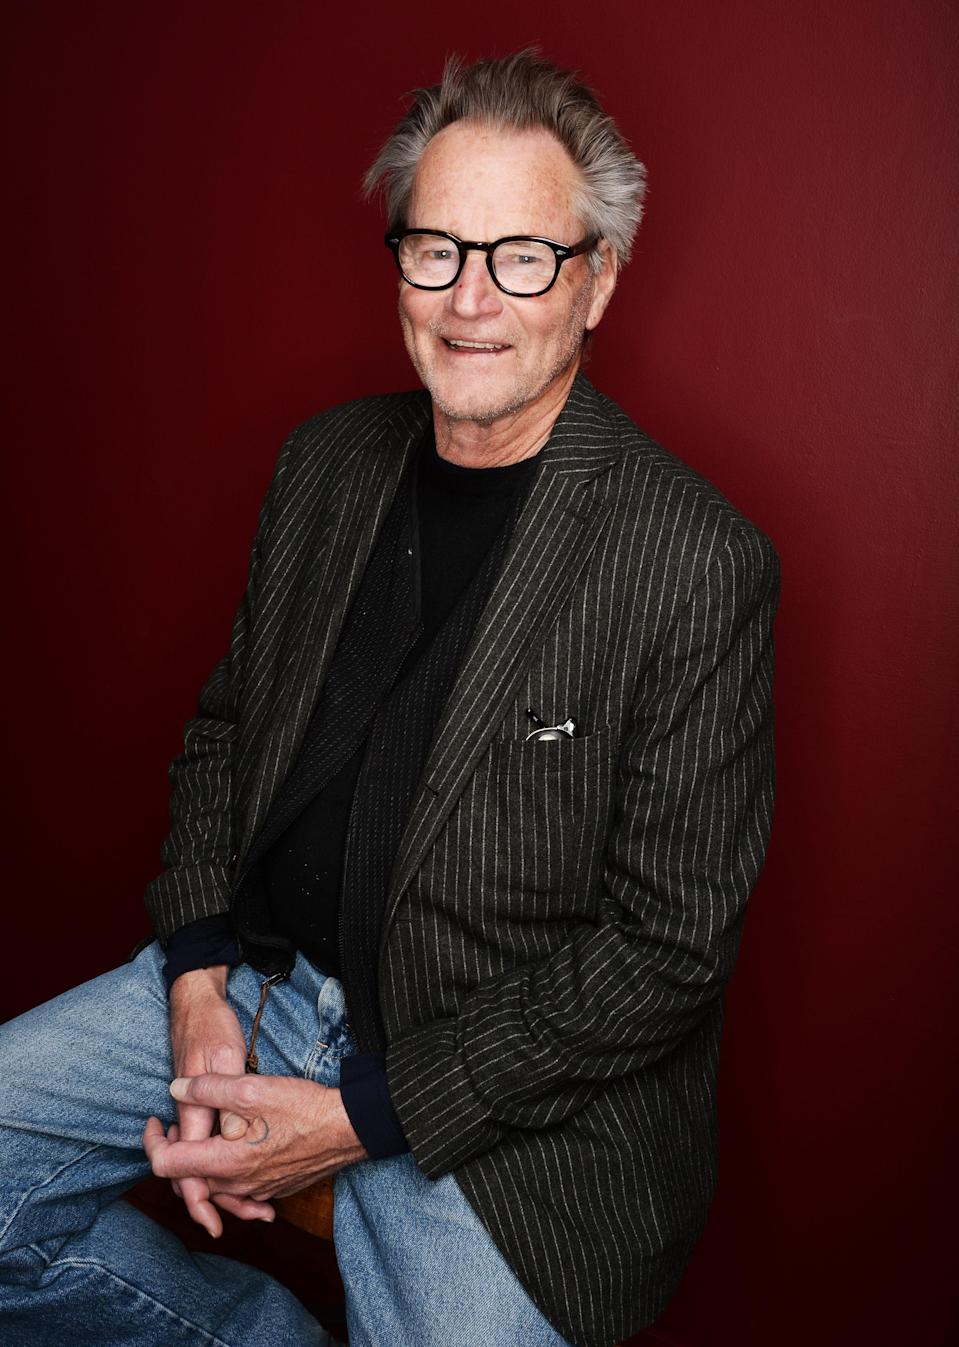 """<p>Shepard was <a rel=""""nofollow"""" href=""""https://www.yahoo.com/entertainment/sam-shepard-pulitzer-winning-playwright-celebrated-actor-dies-153151439.html"""" data-ylk=""""slk:known to audiences;outcm:mb_qualified_link;_E:mb_qualified_link;ct:story;"""" class=""""link rapid-noclick-resp yahoo-link"""">known to audiences</a> for his work in movies, such as <i>The Notebook</i>, <em>The Right Stuff</em>, and <i>Steel Magnolias</i>, and for his longtime relationship with Jessica Lange, which ended in 2009. But he was also an acclaimed playwright who, in 1979, won the Pulitzer Prize for drama. He died July 27 following complications from amyotrophic lateral sclerosis, better known as Lou Gehrig's disease. (Photo: Getty Images) </p>"""